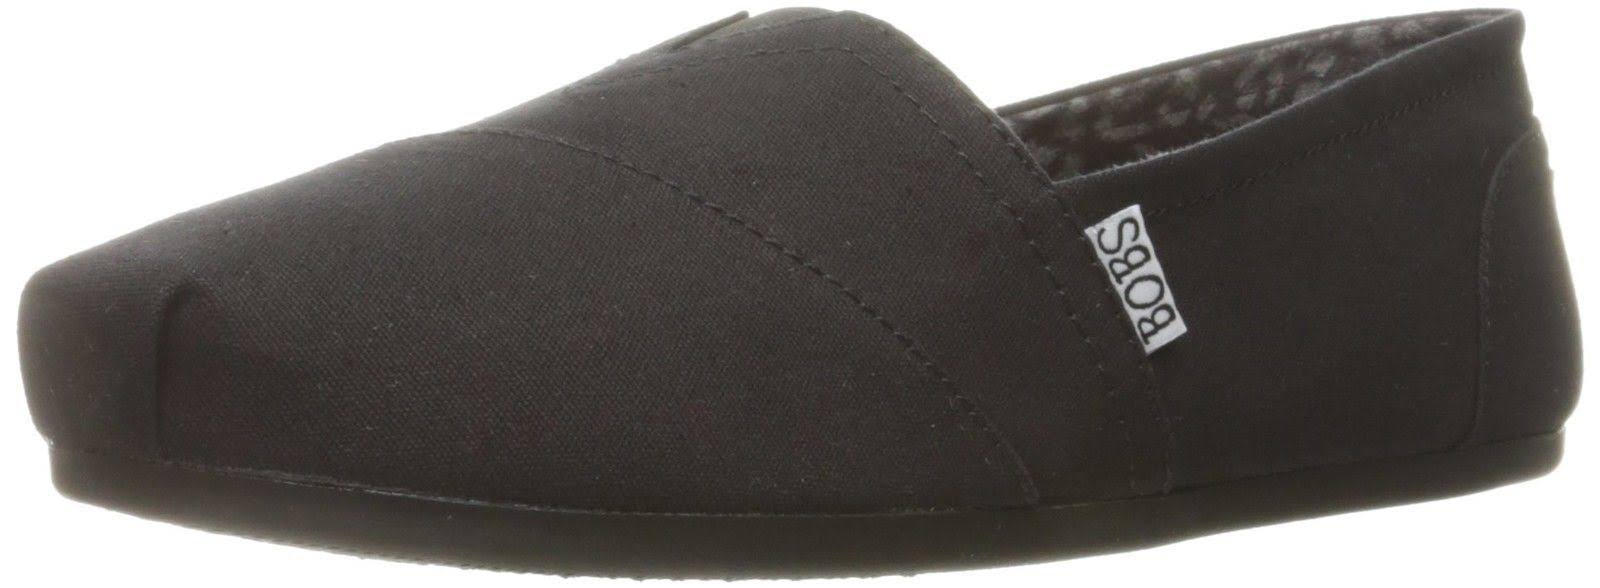 Skechers Women's Bobs Plush Peace and Love Flat Shoes - Black, 8 US